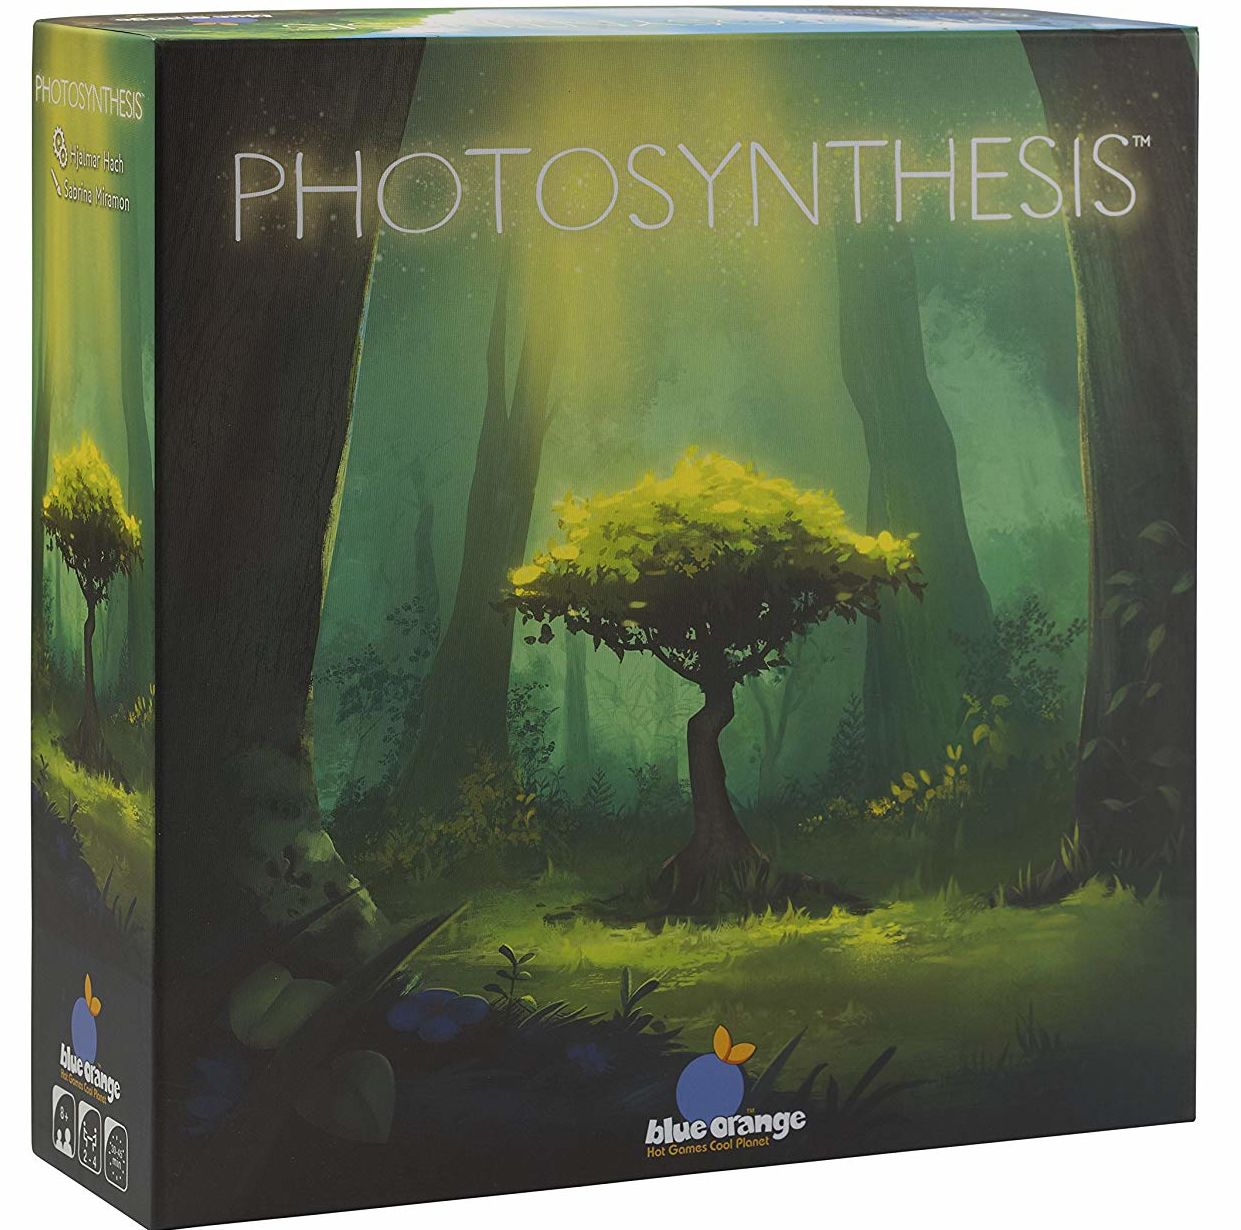 Photosynthesis Is the Strategy Game That Lets You Take Control of a Forest Ecosystem